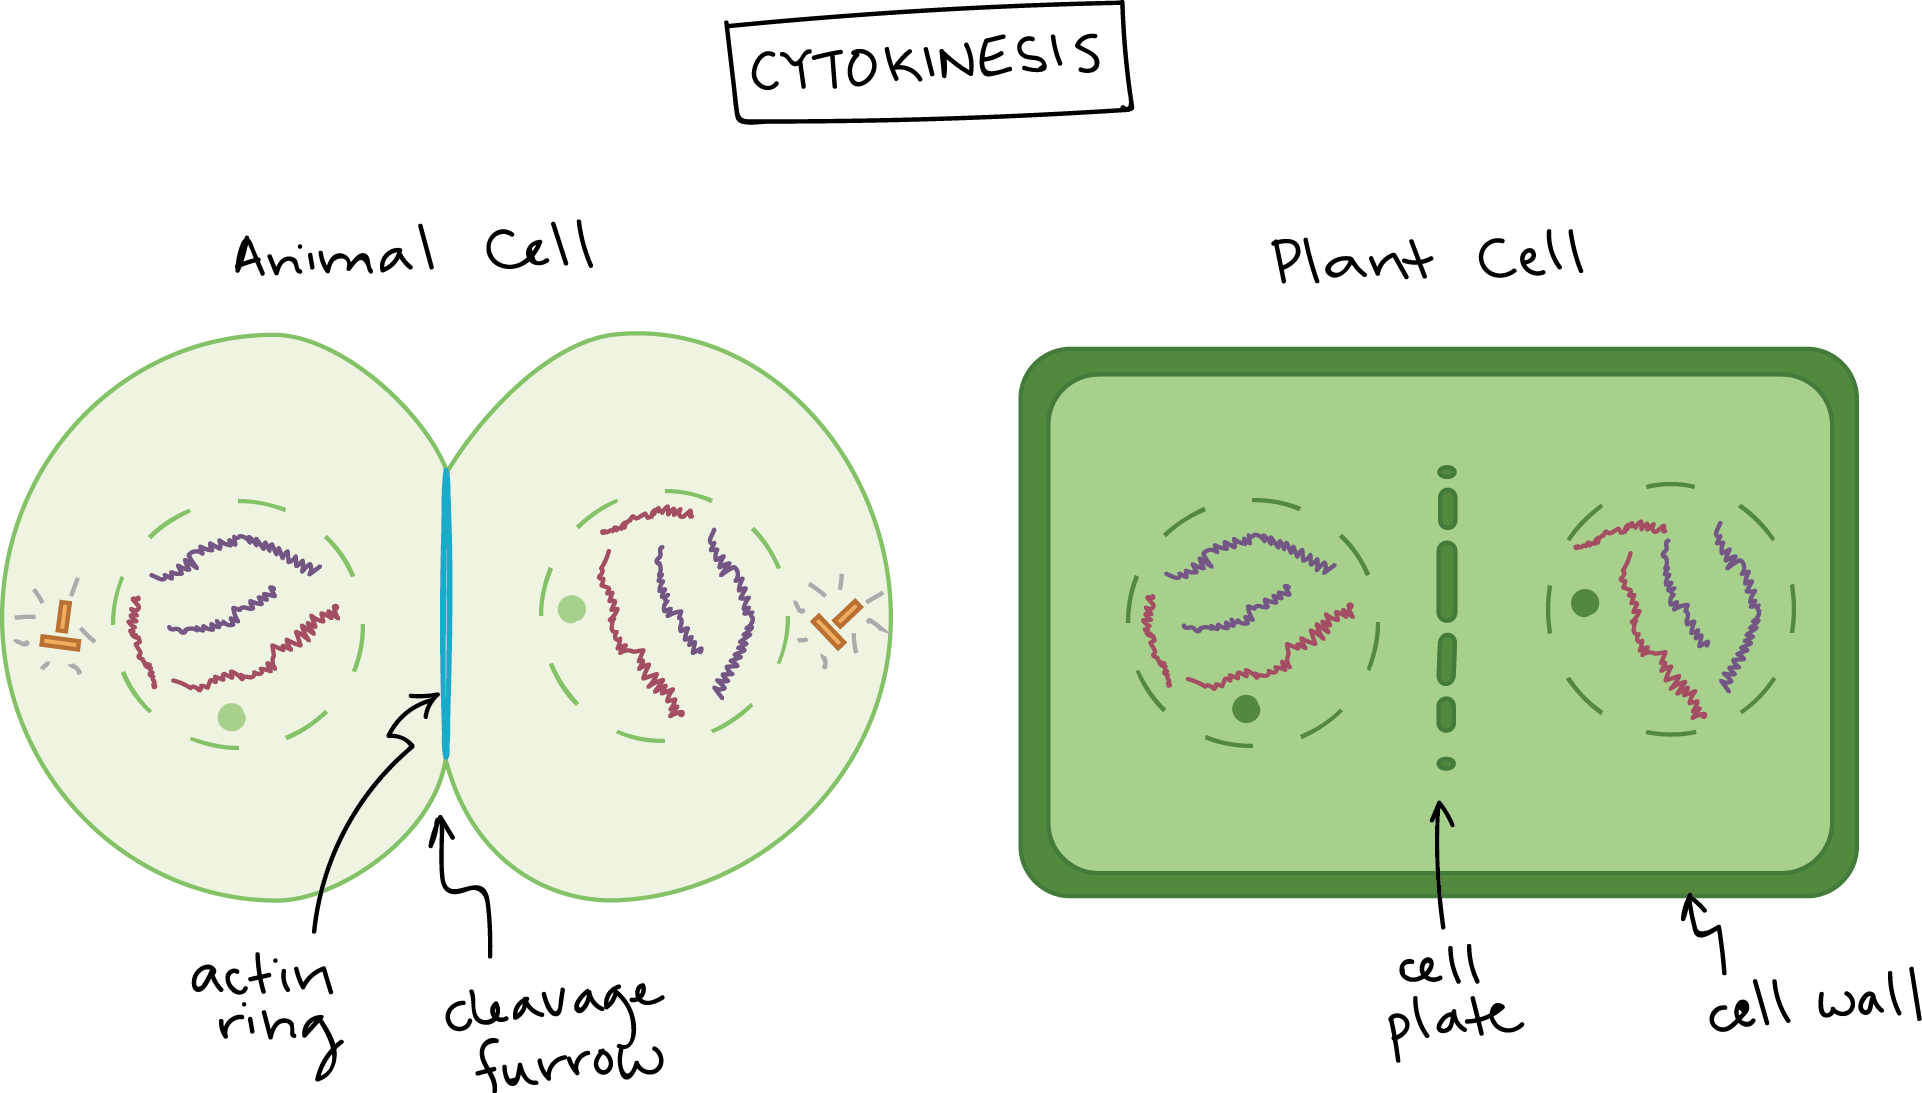 Cytokinesis drawing. Collection of labeled